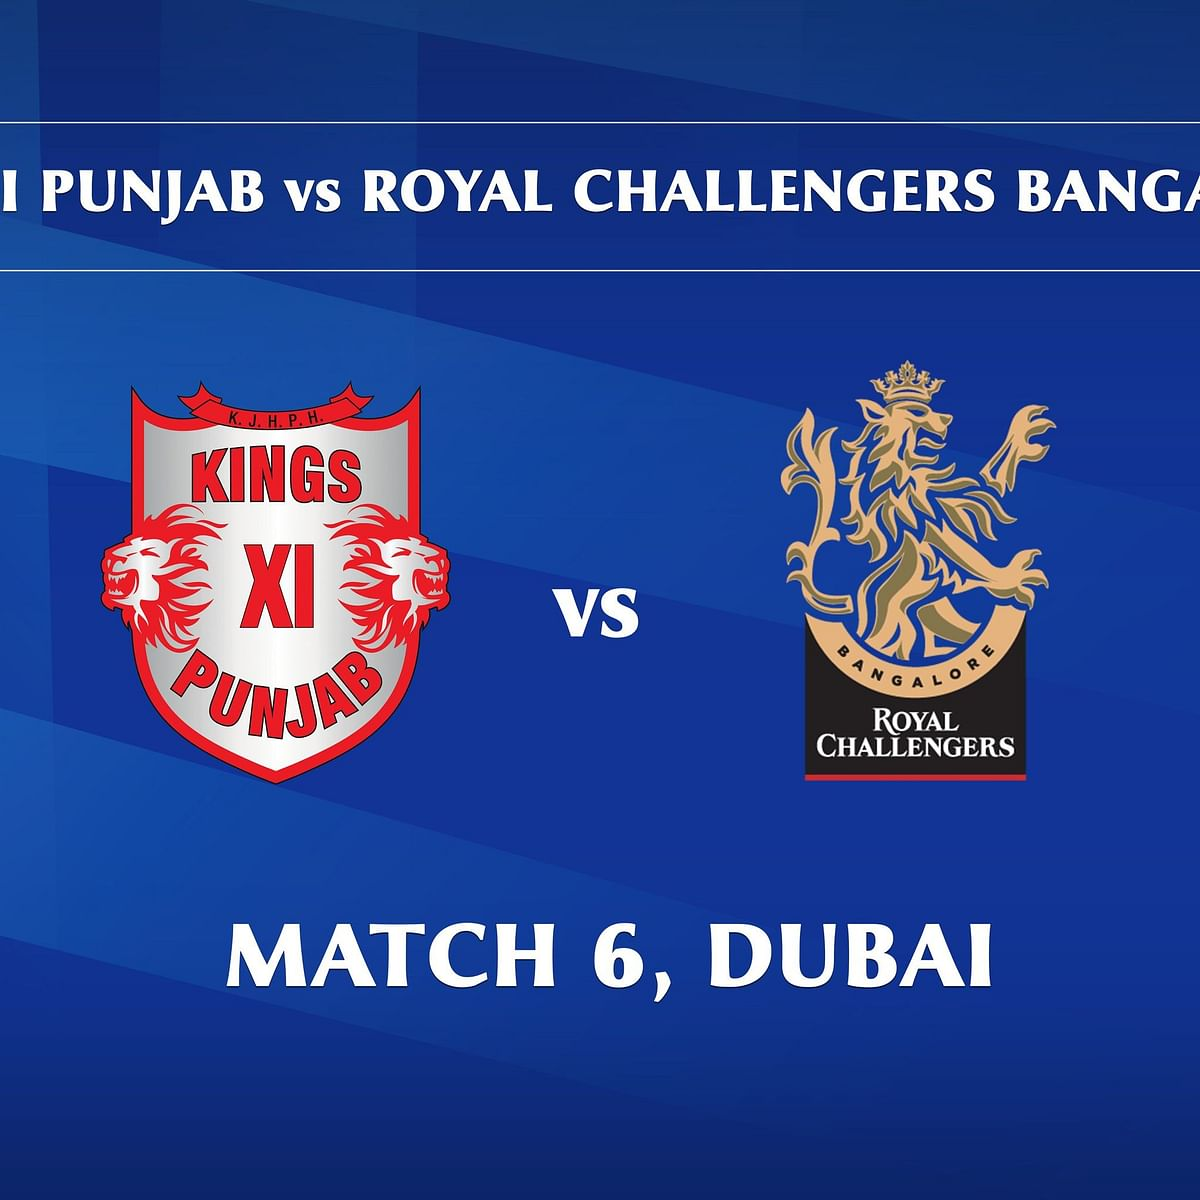 Kings XI Punjab vs Royal Challengers Bangalore LIVE: Score, Commentary for the 6th match of IPL 2020